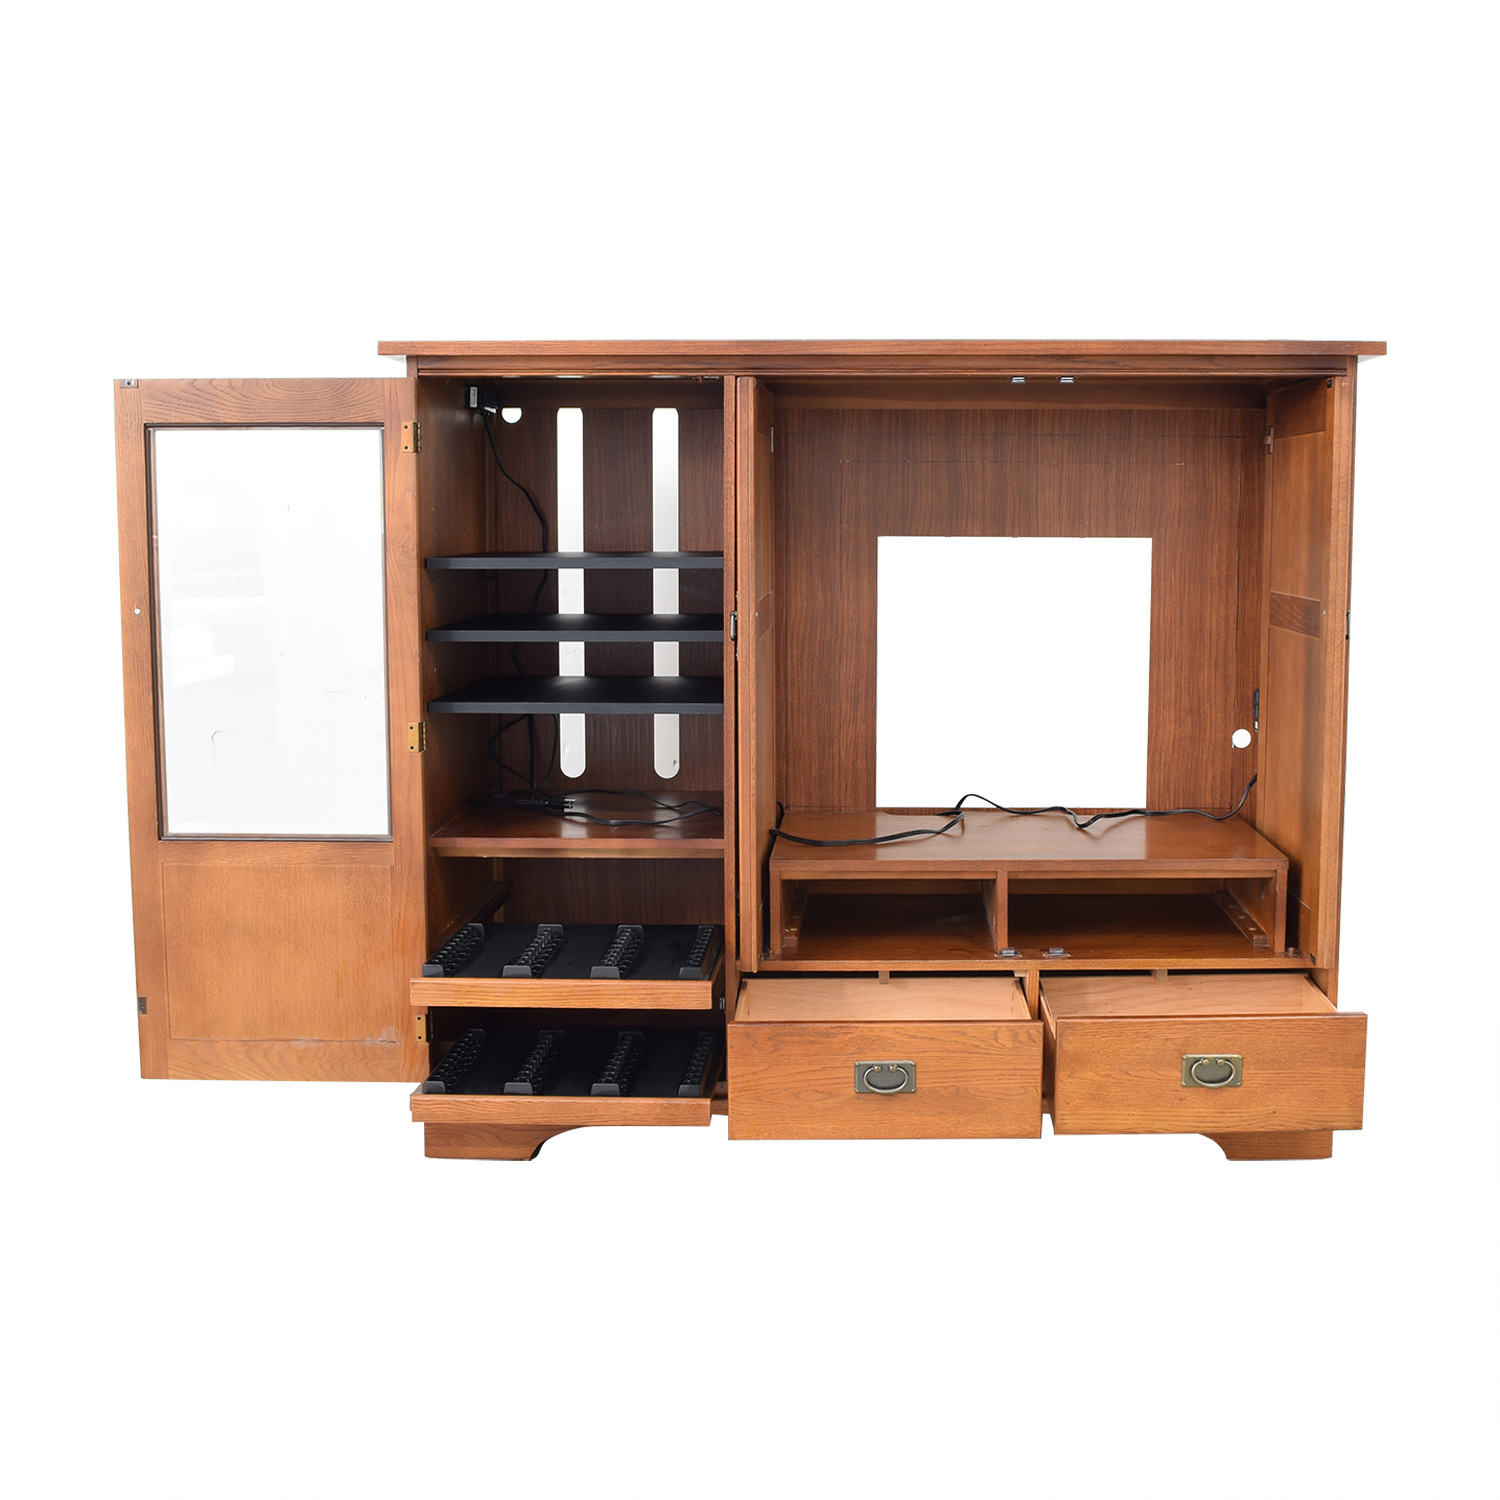 Hooker Furniture Hooker Furniture Illuminated Media Console coupon